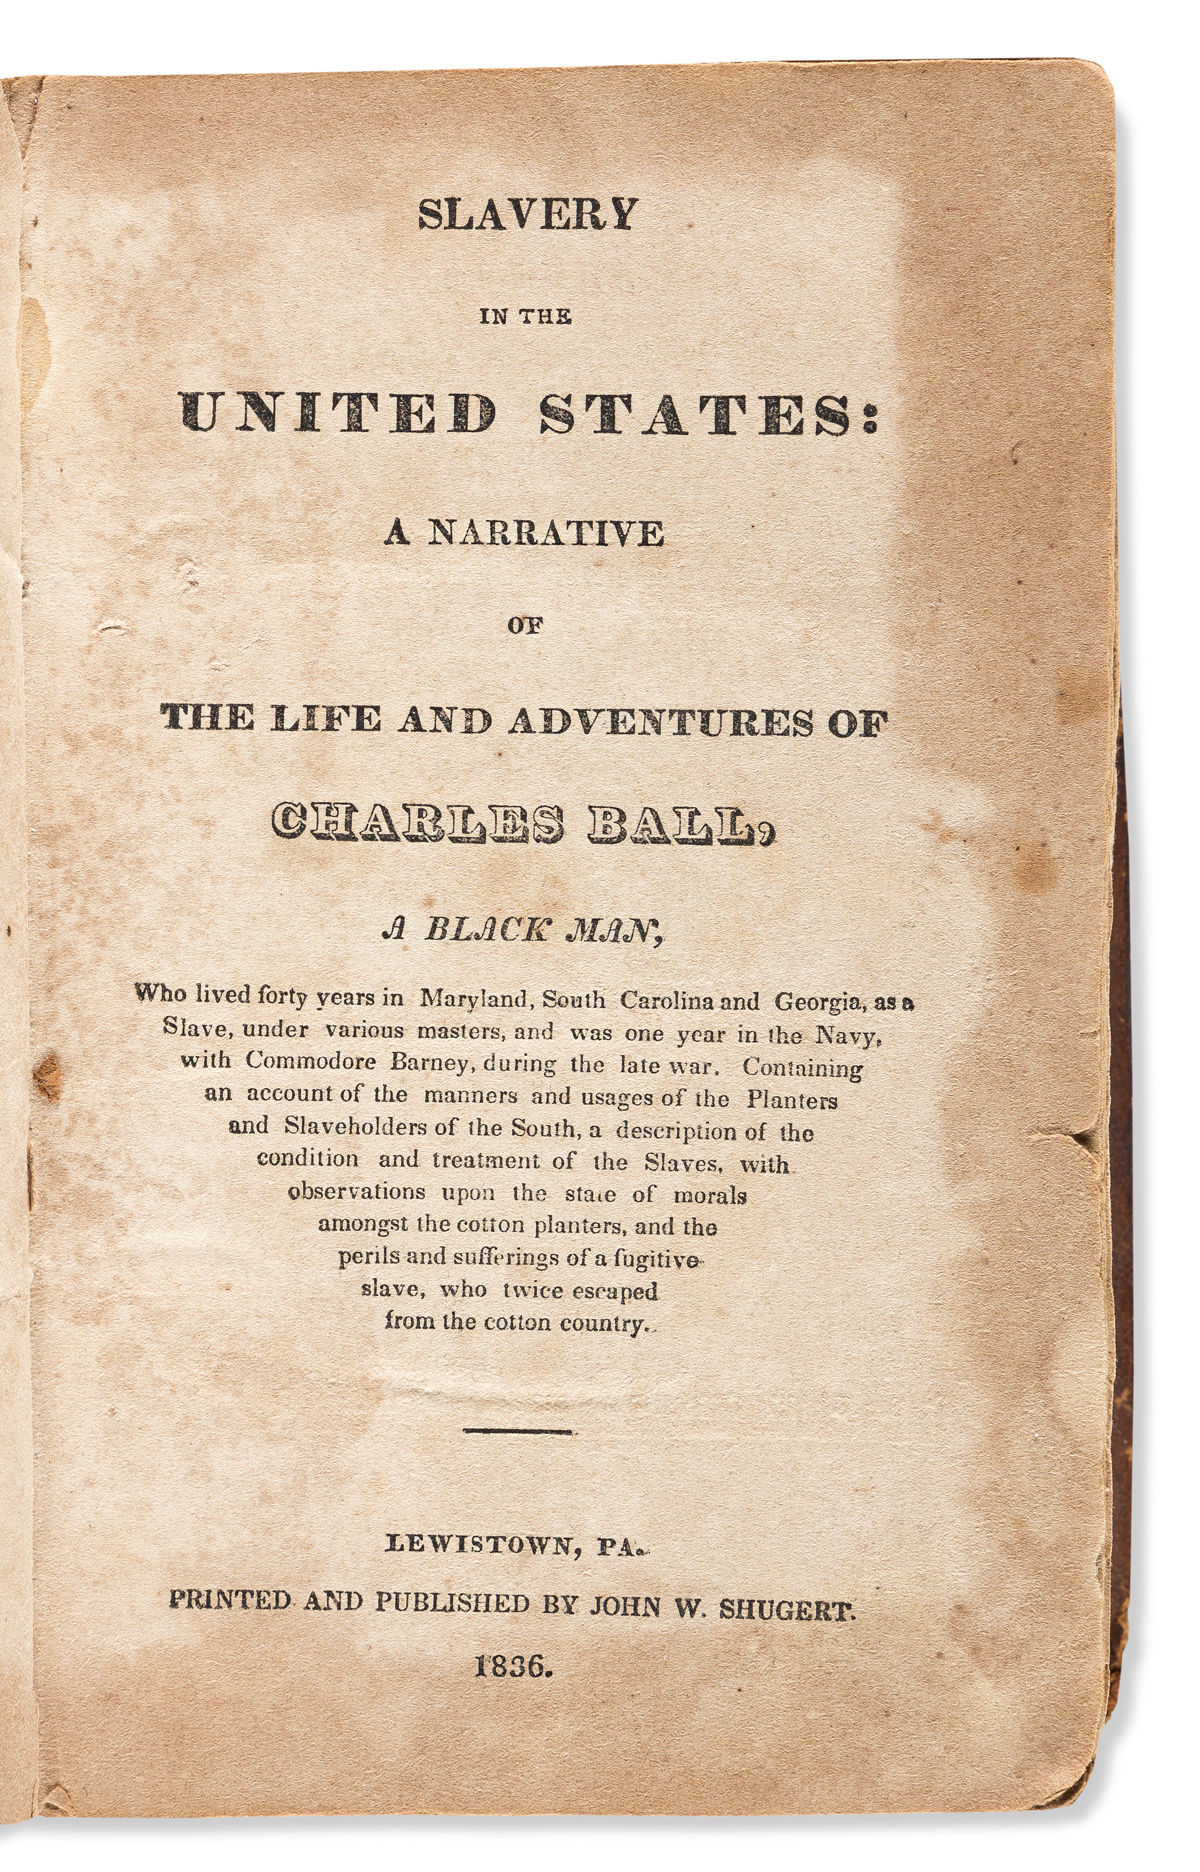 (SLAVERY AND ABOLITION.) Slavery in the United States: A Narrative of the Life and Adventures of Charles Ball, a Black Man.